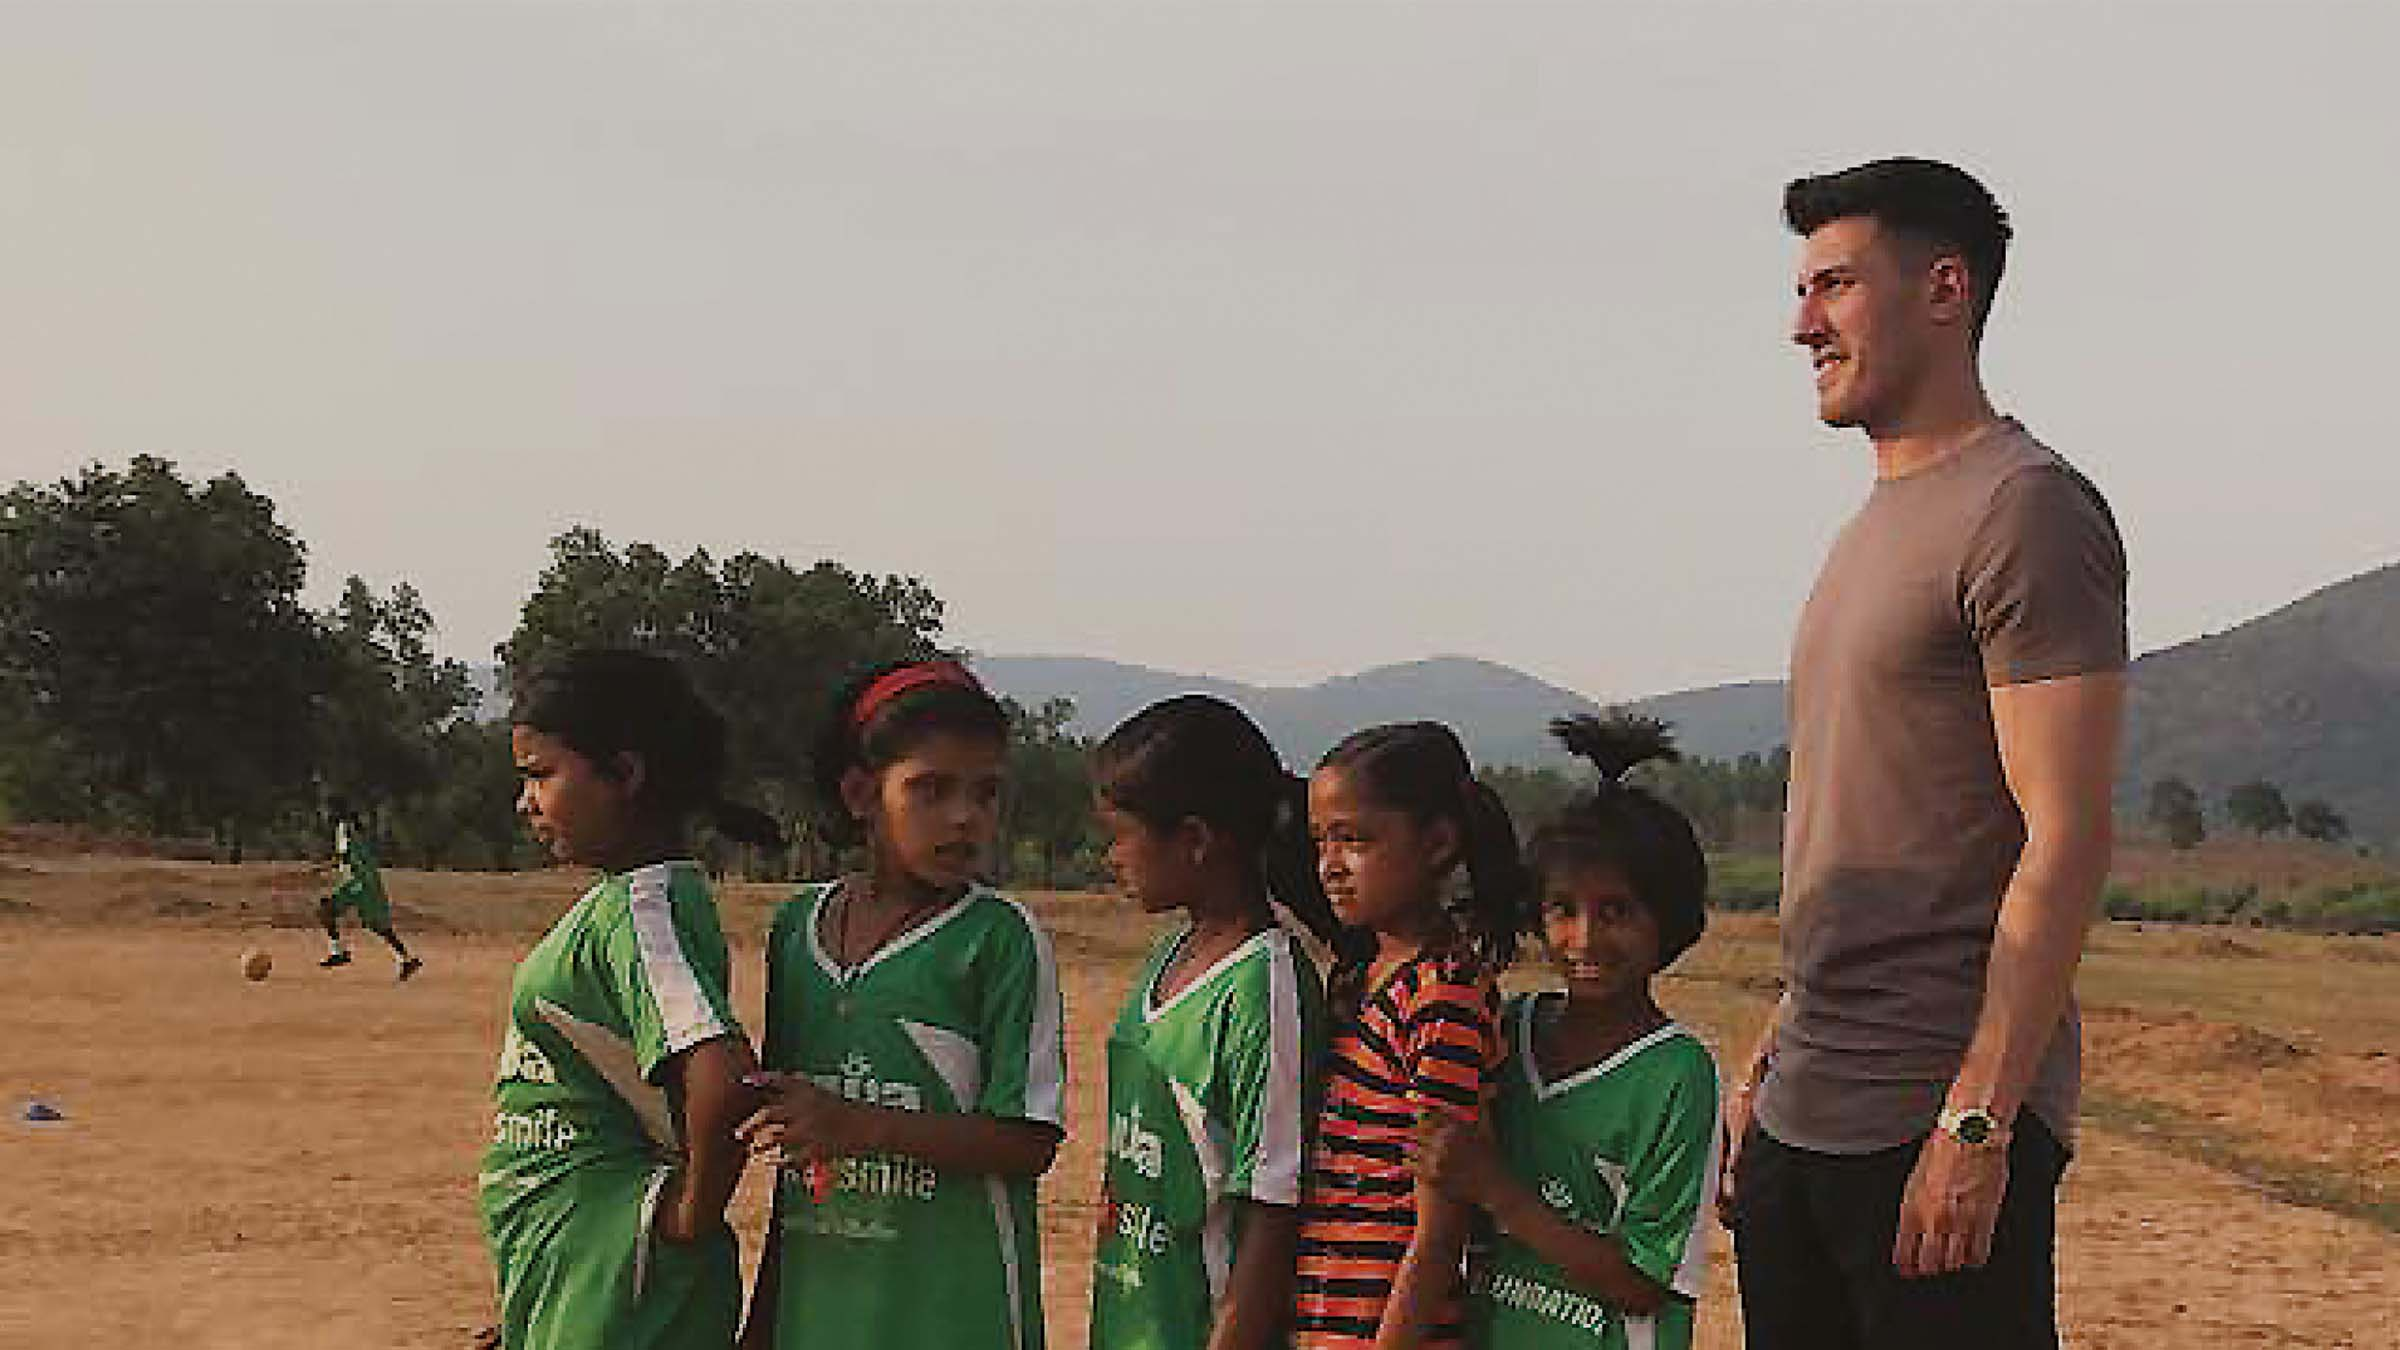 Indian Football Documentary With Danny Batth